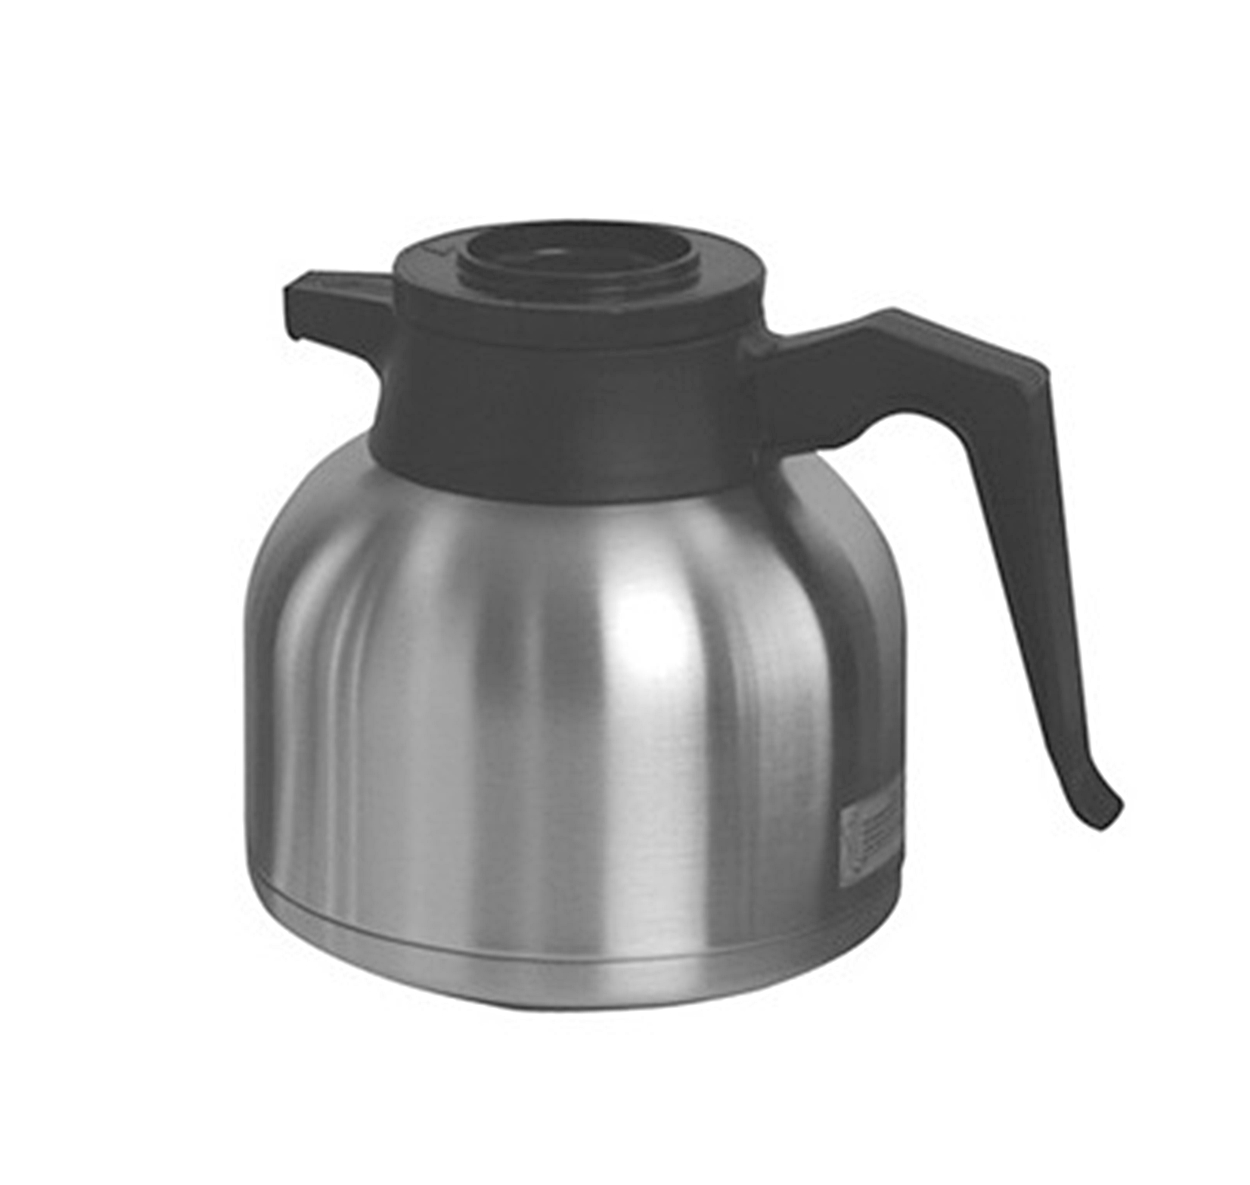 Newco 111445 1.9L Stainless Lined Thermal Carafe